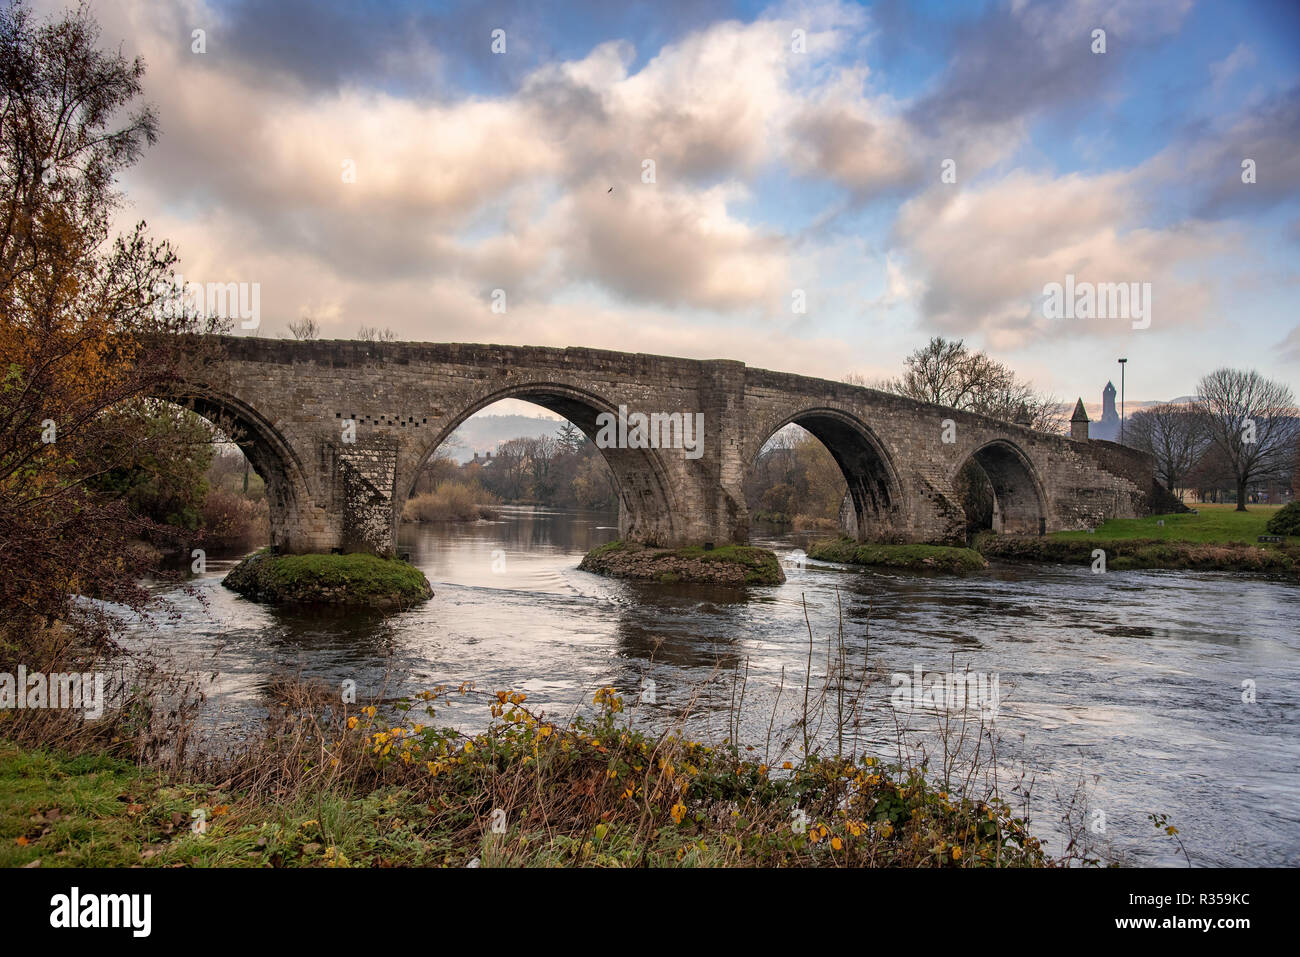 The Old bridge at Stirling over the river Forth. - Stock Image